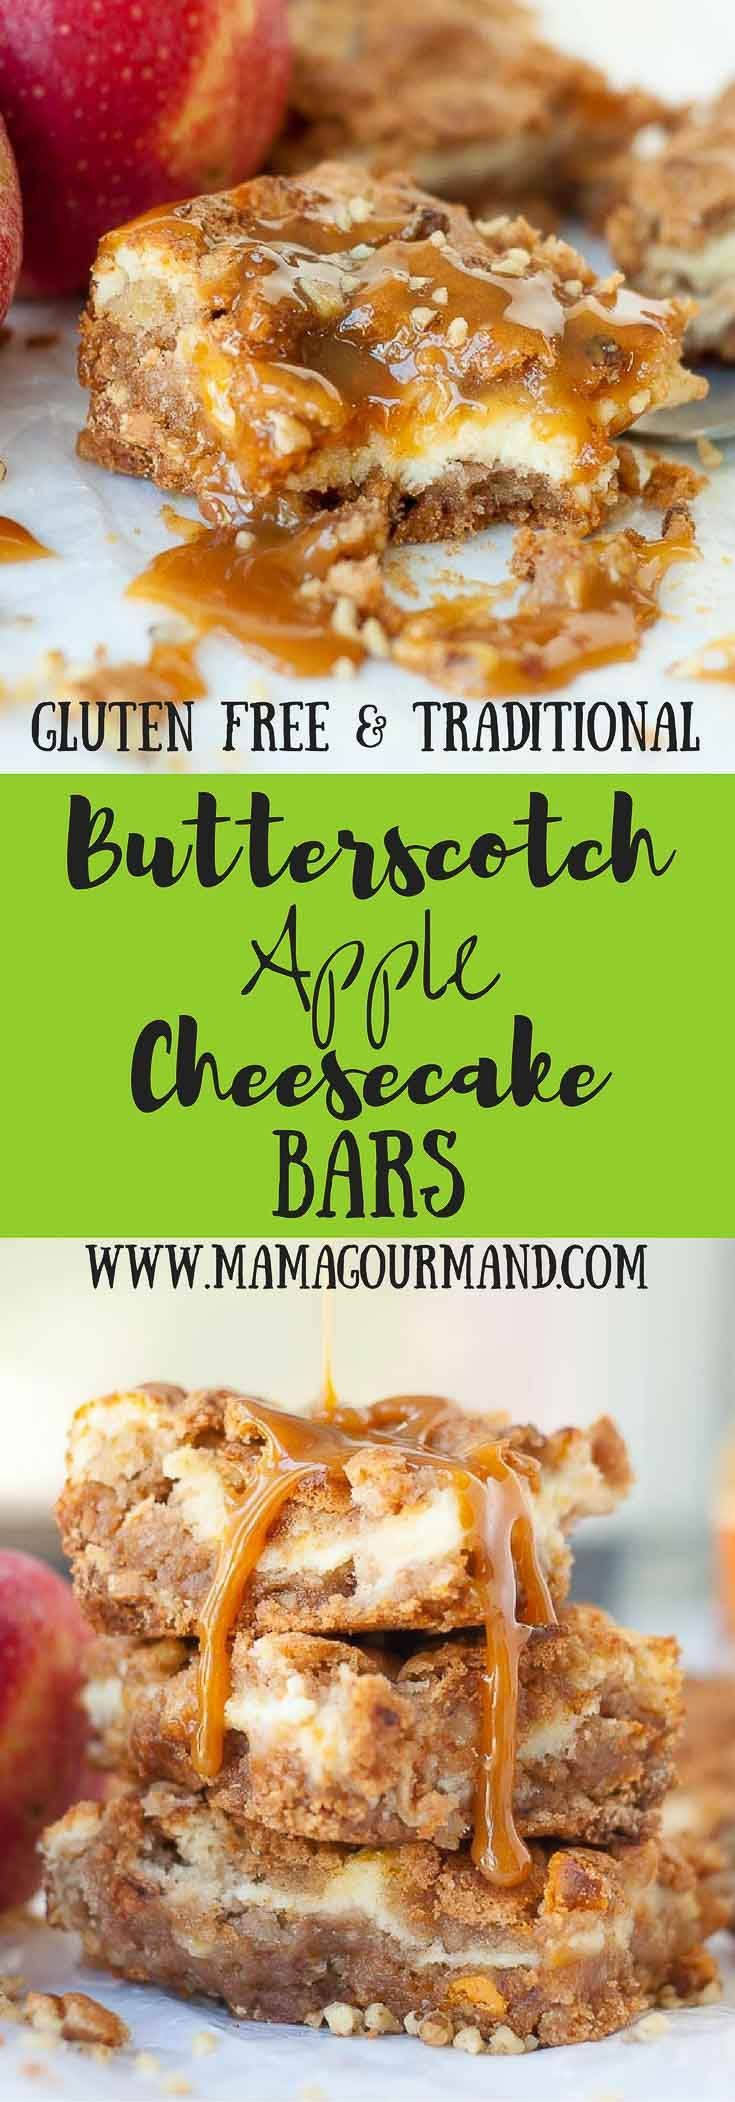 Butterscotch Apple Cheesecake Bars has simple, no fuss ingredients, and easy prep, but makes one legendary apple bar recipe! https://www.mamagourmand.com